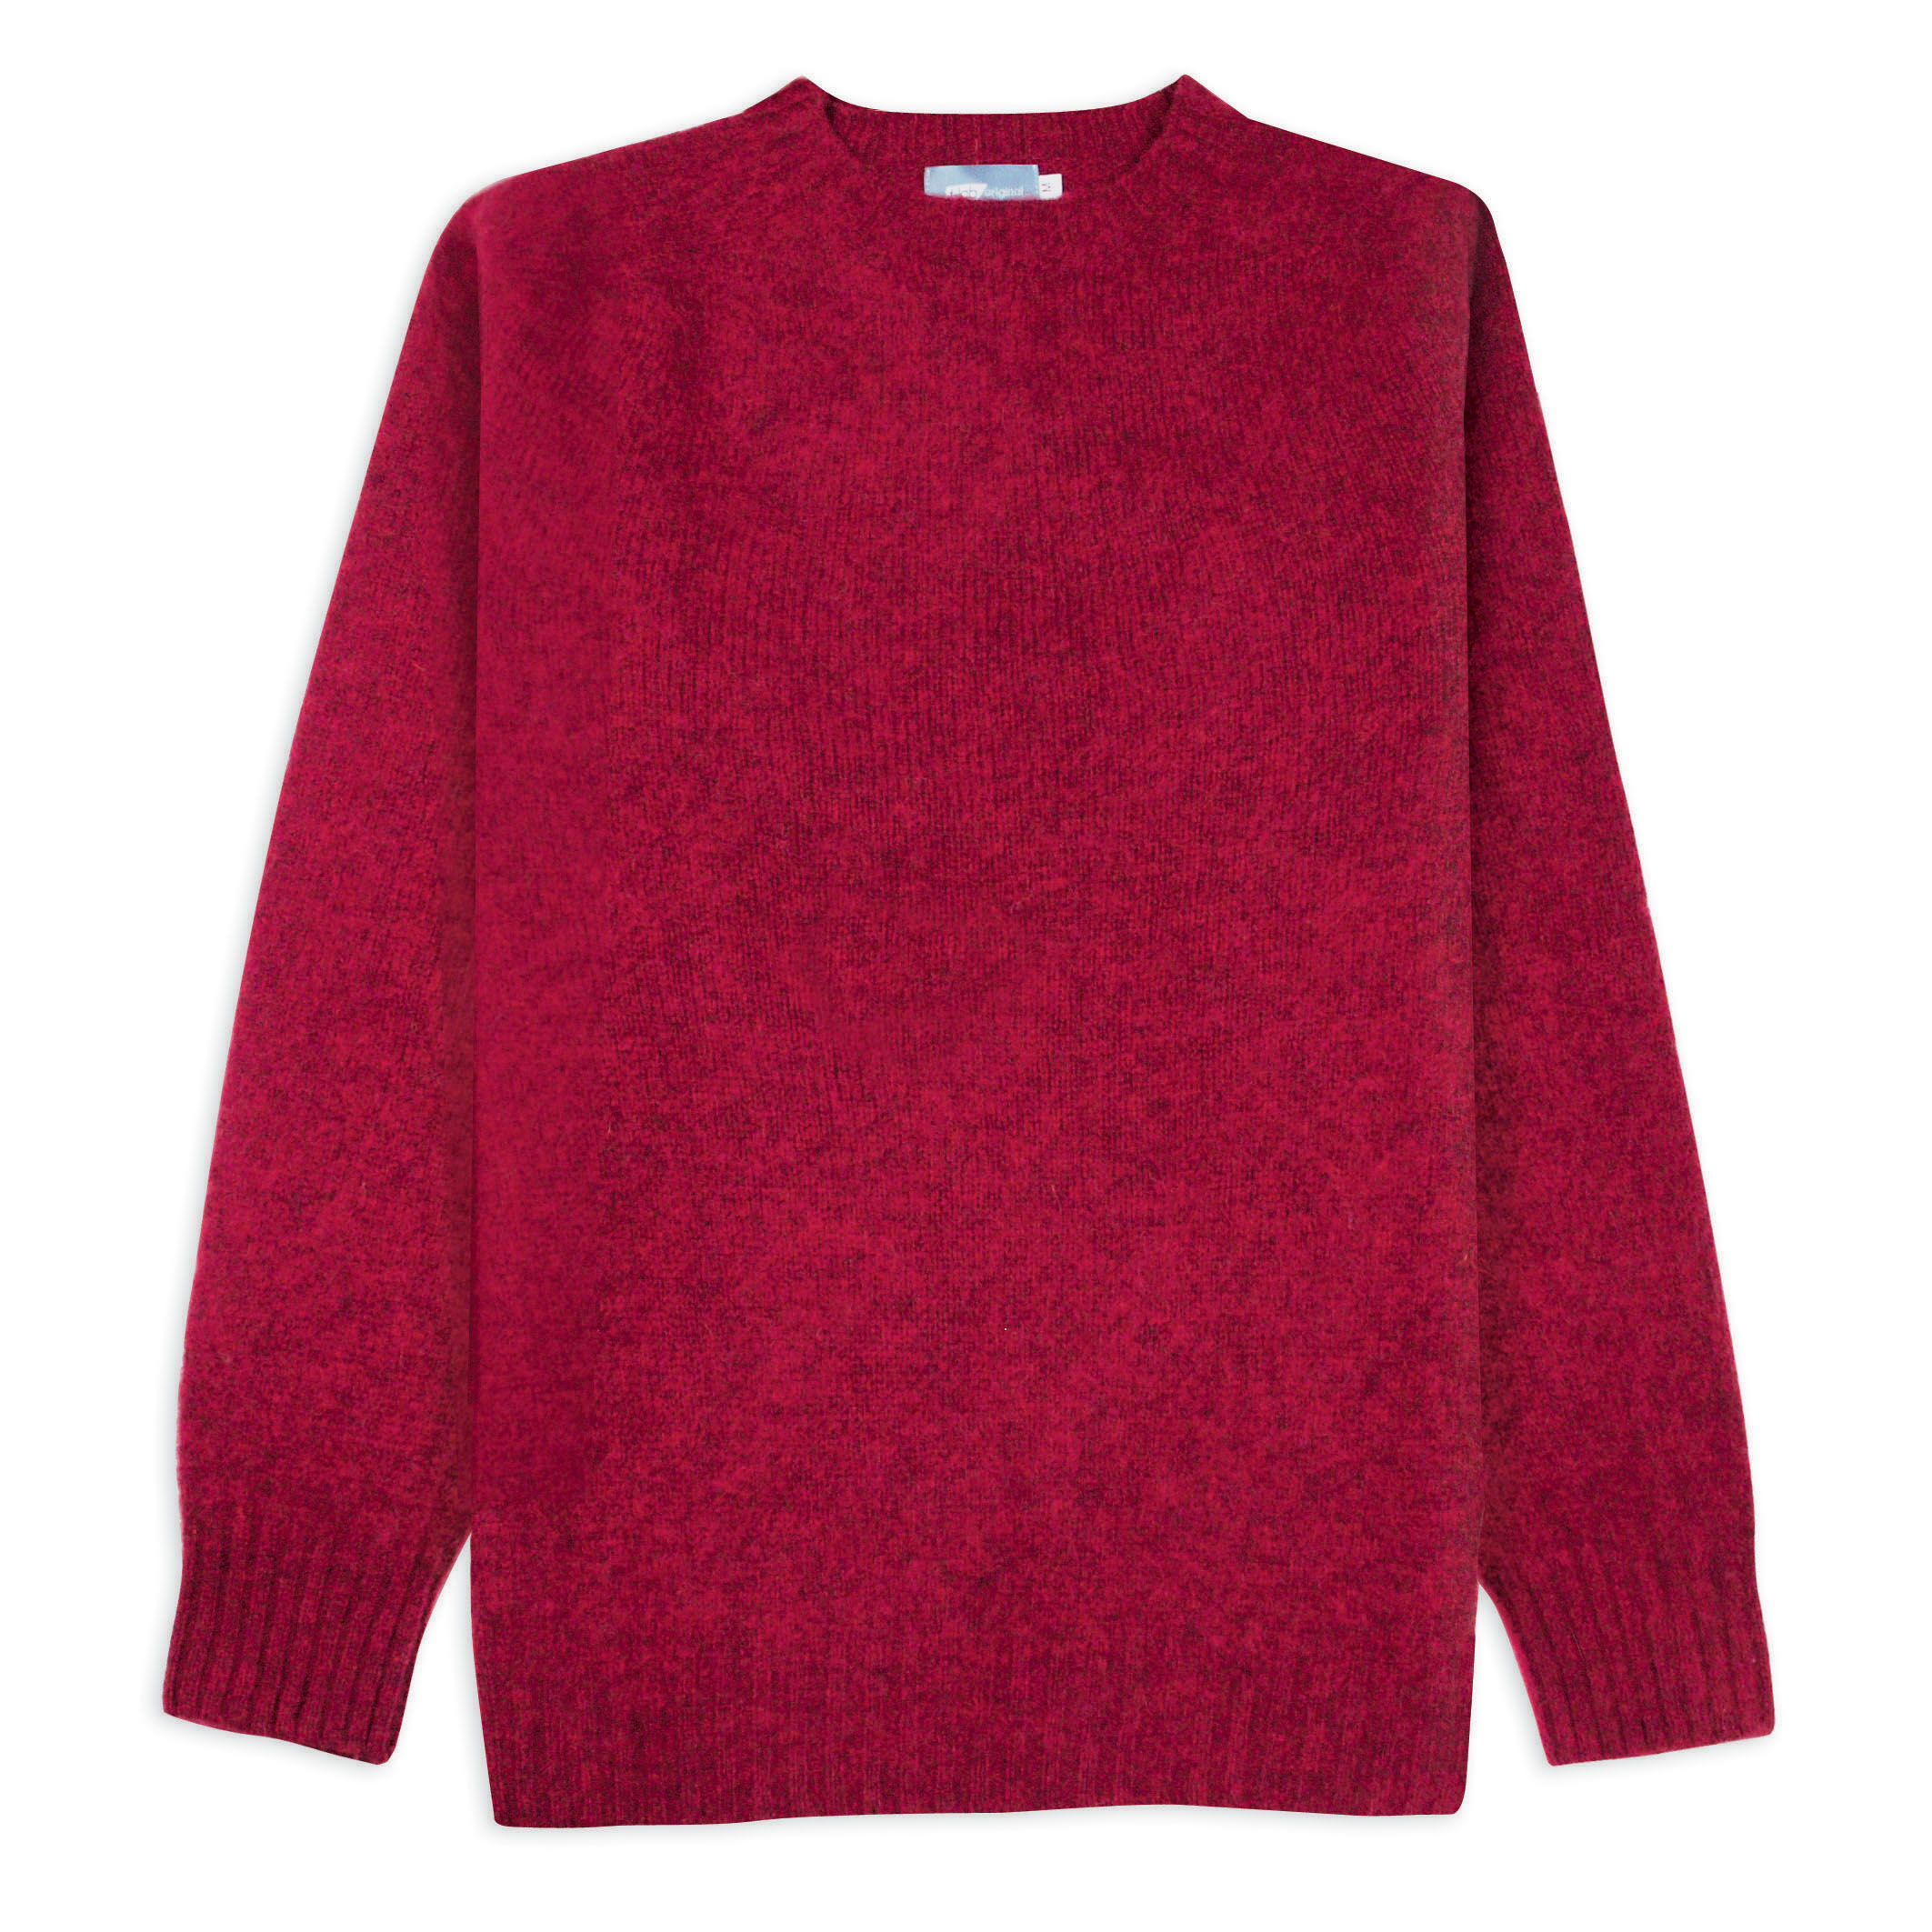 T-lab Coll mens sweater brushed red